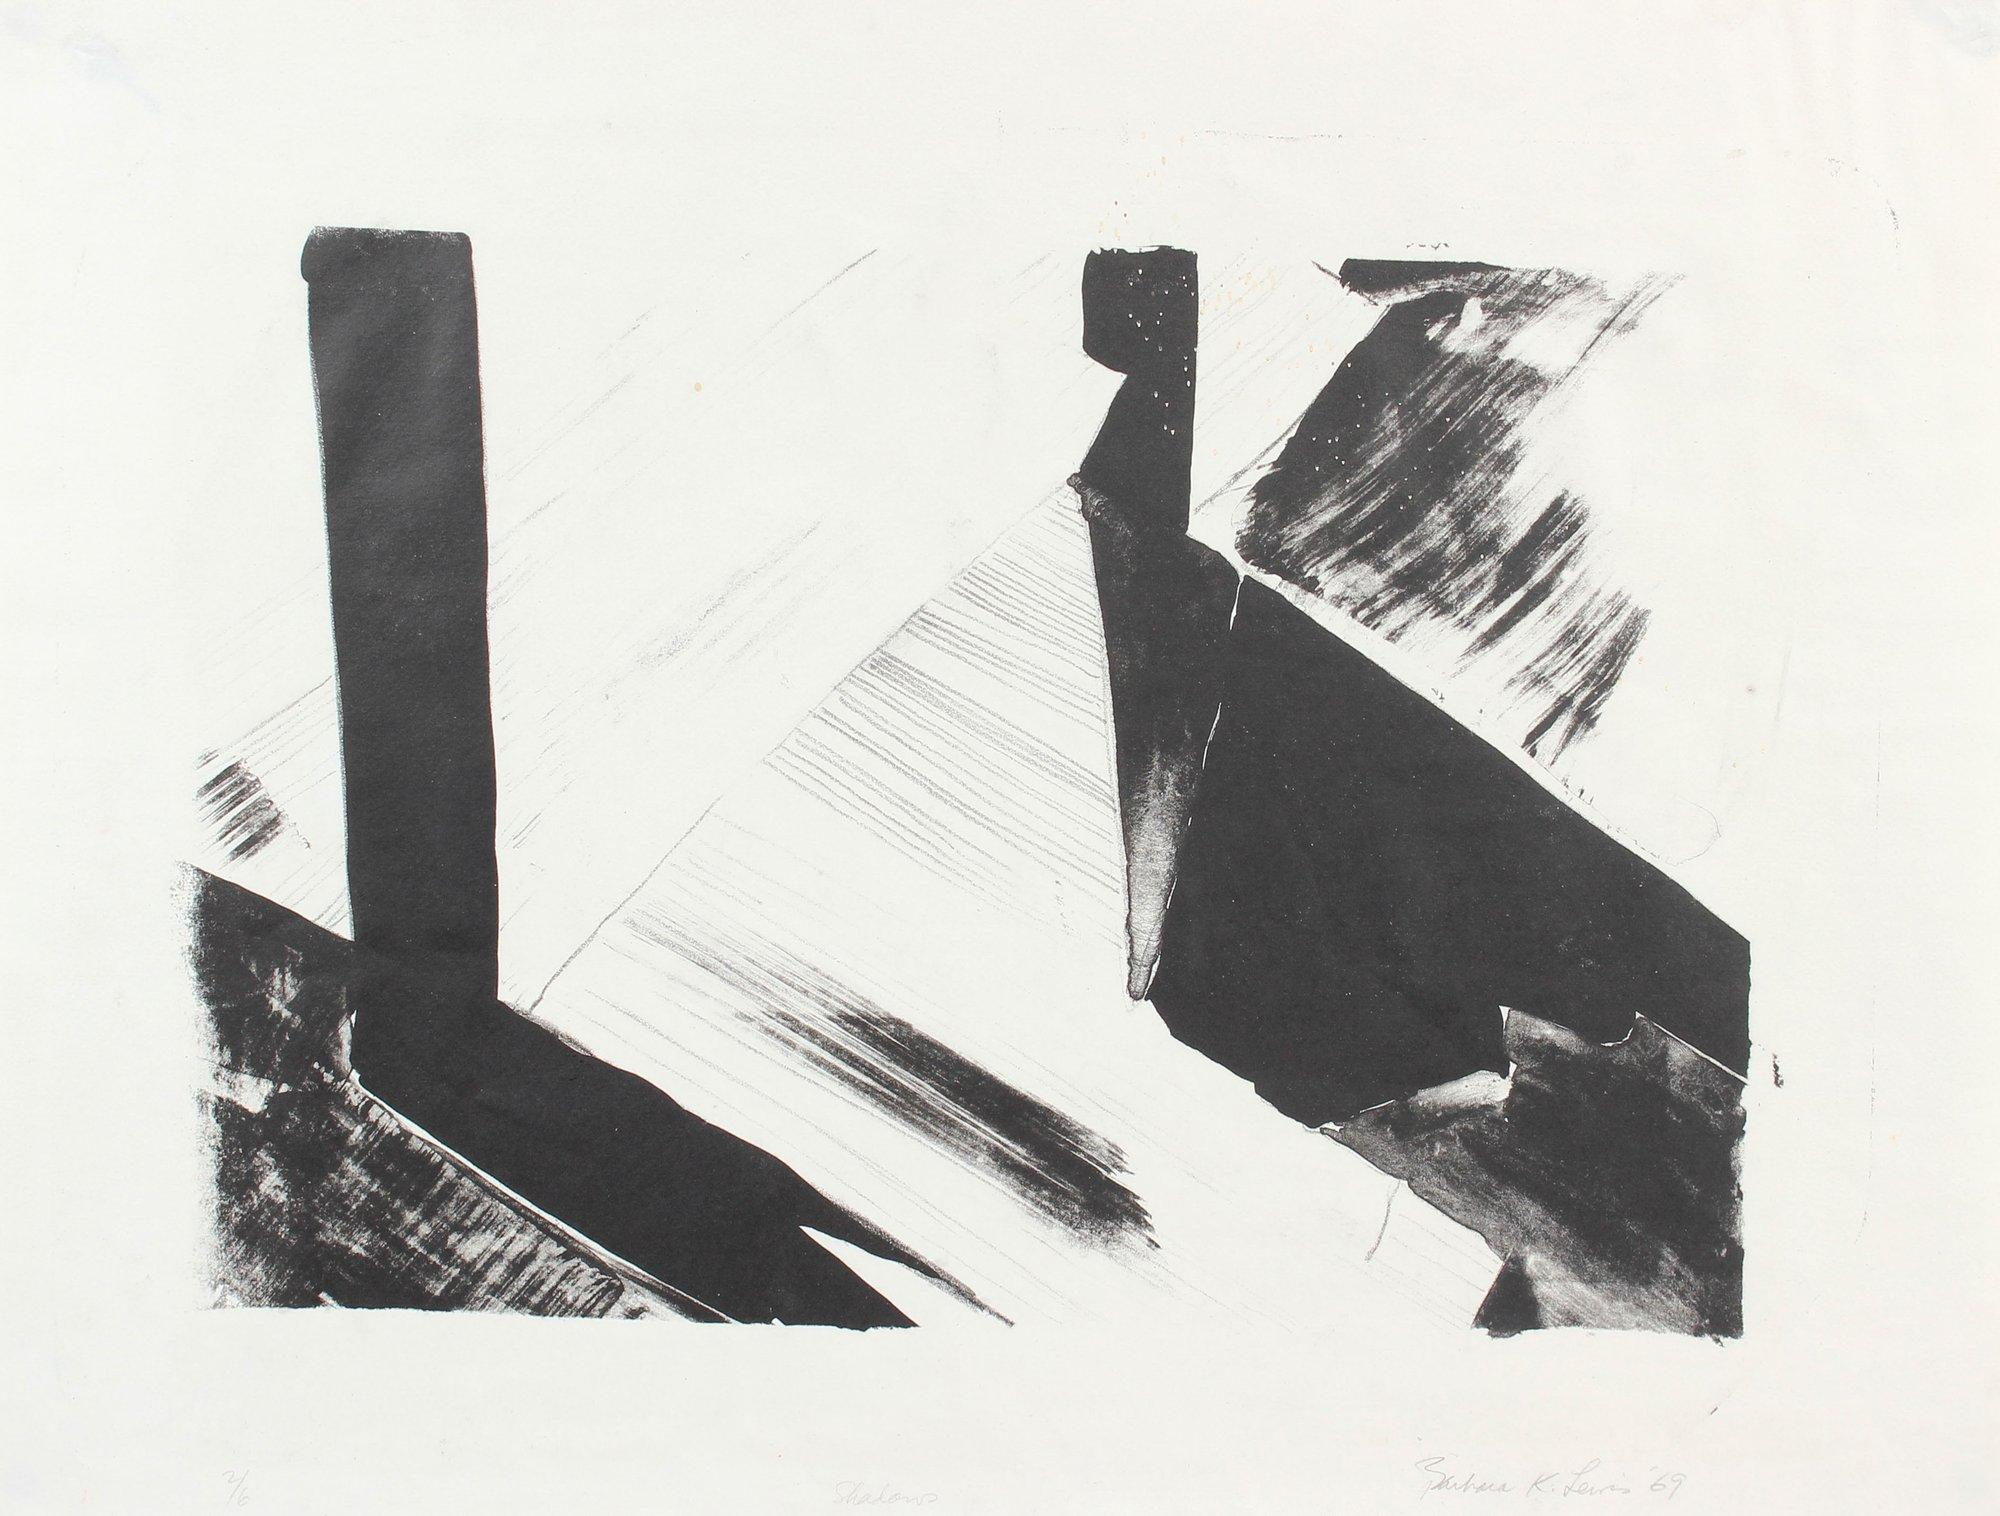 """Shadows"" 1969 Stone Lithograph Minimal Abstract in Black and White"